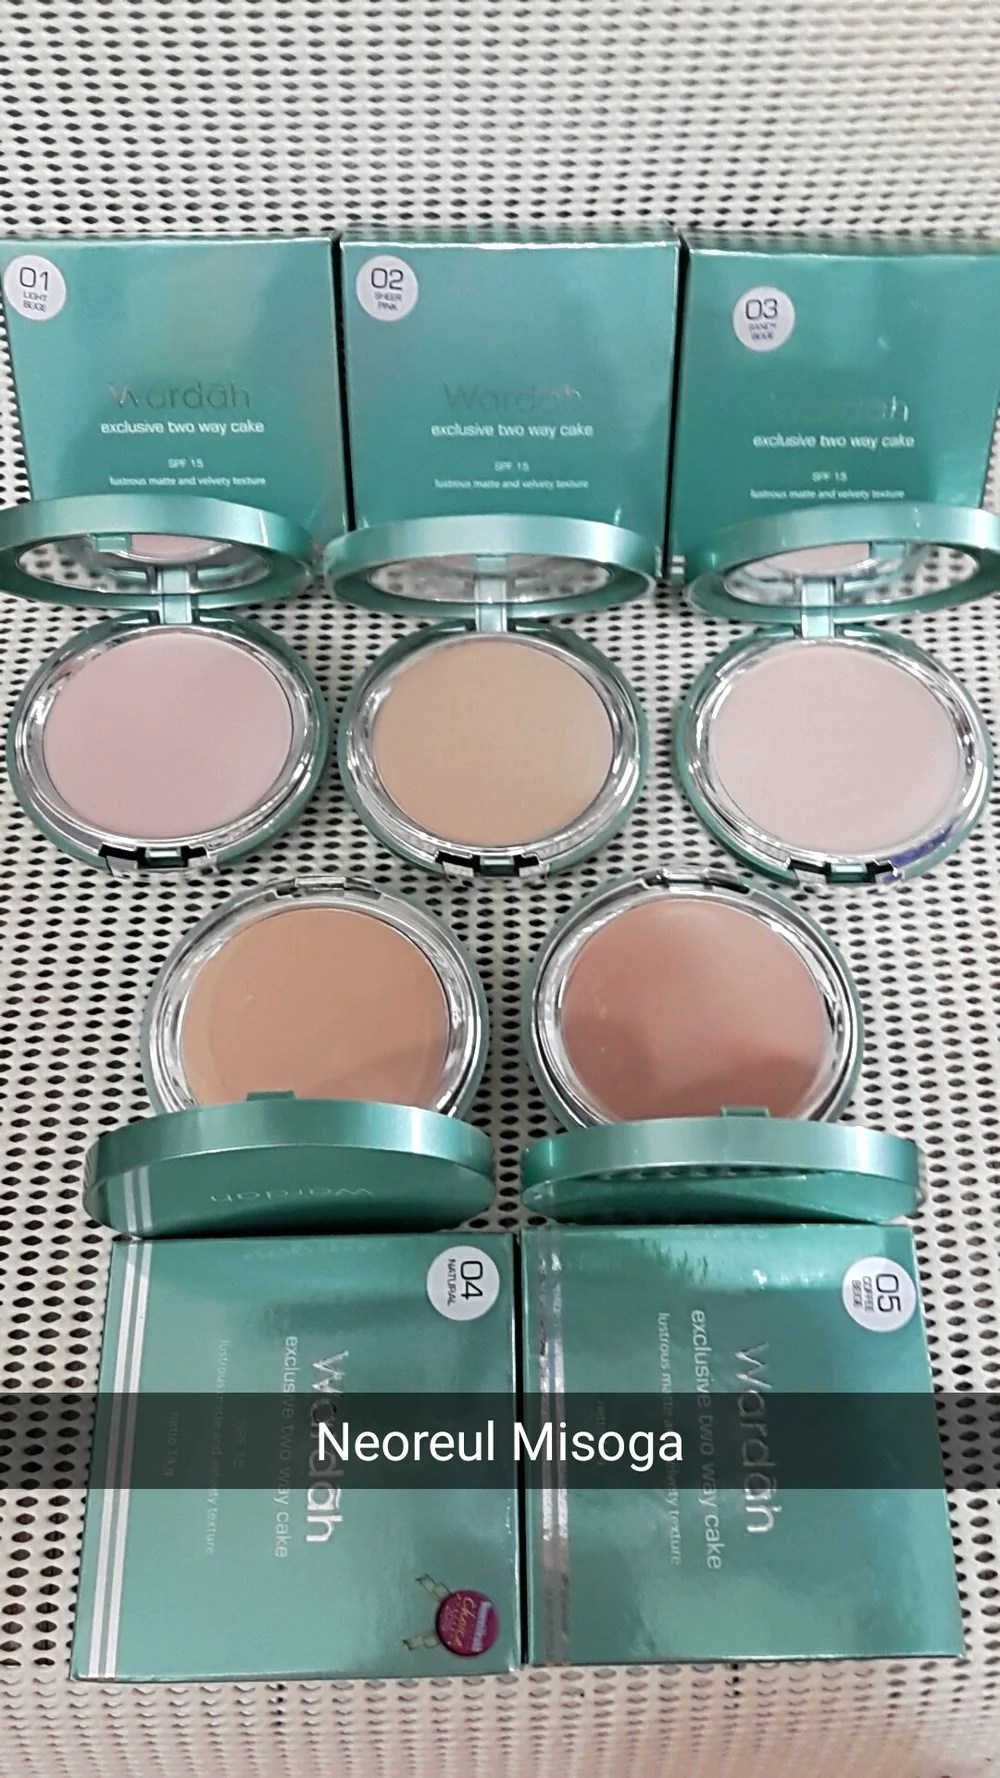 Warna Bedak Wardah : warna, bedak, wardah, Beauty, Matte, Cream, Halal, Cosmetics, Australia